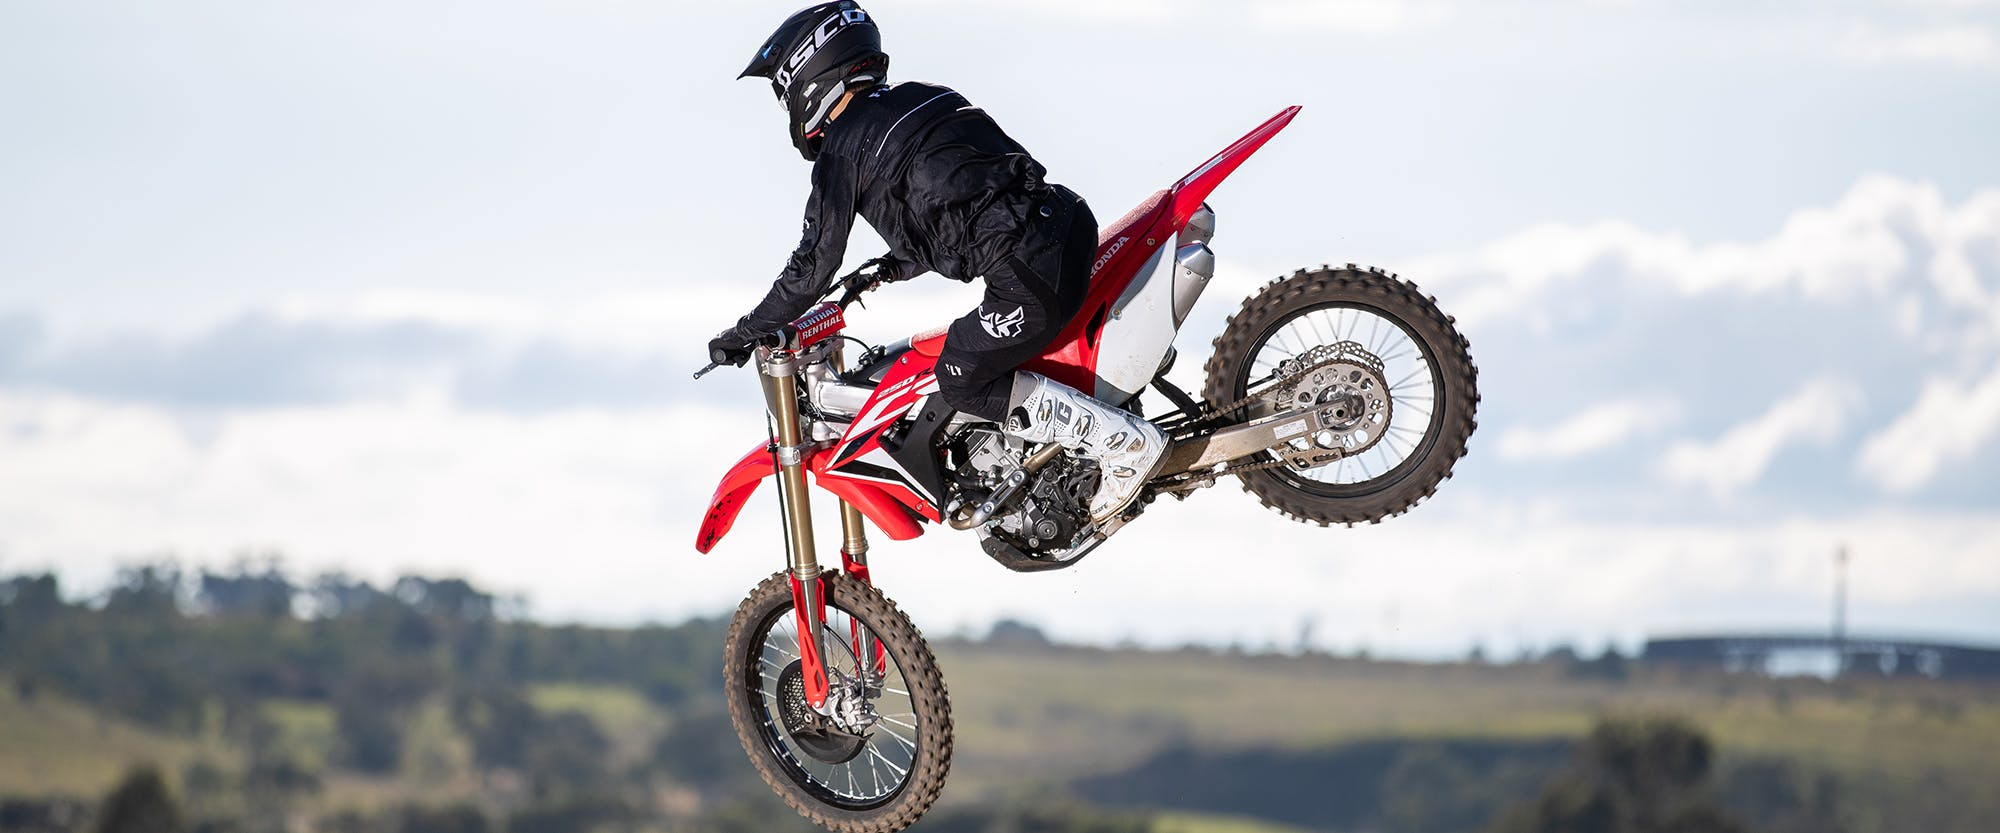 Honda CRF250R in extreme red colour doing air stunts